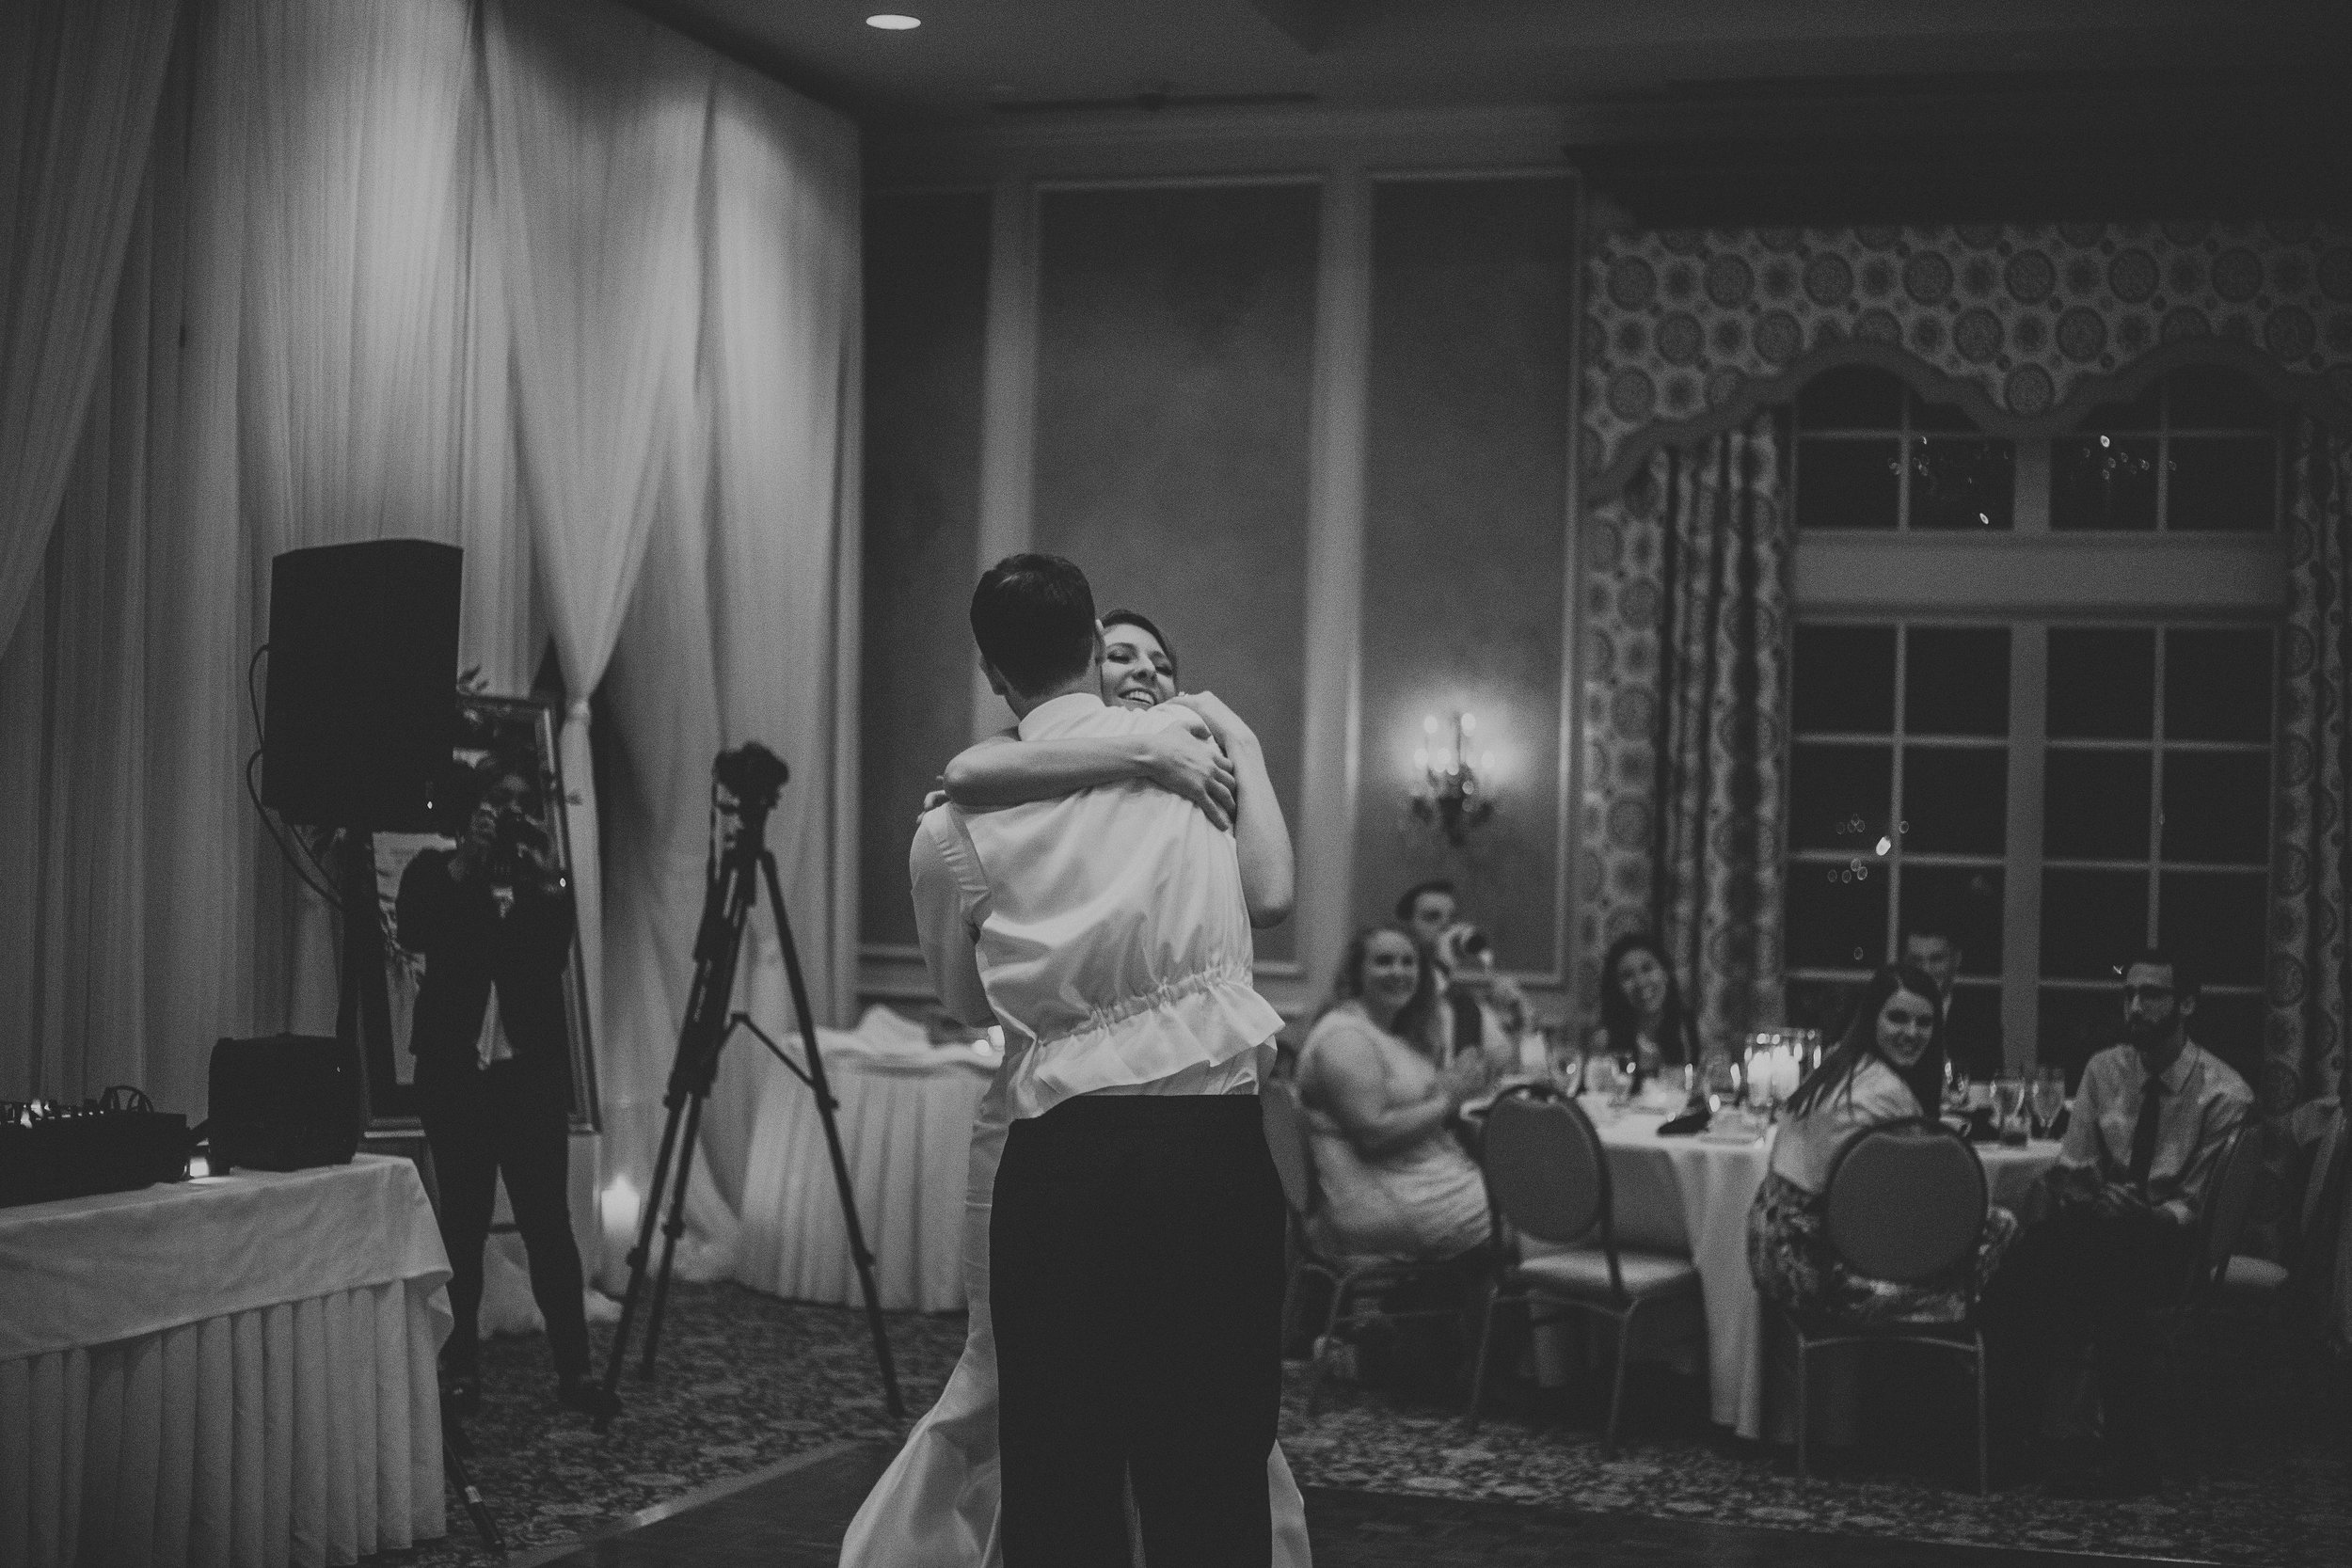 Our first dance is one of the things I loved most about the wedding. We had a blast learning it, and worked so hard!